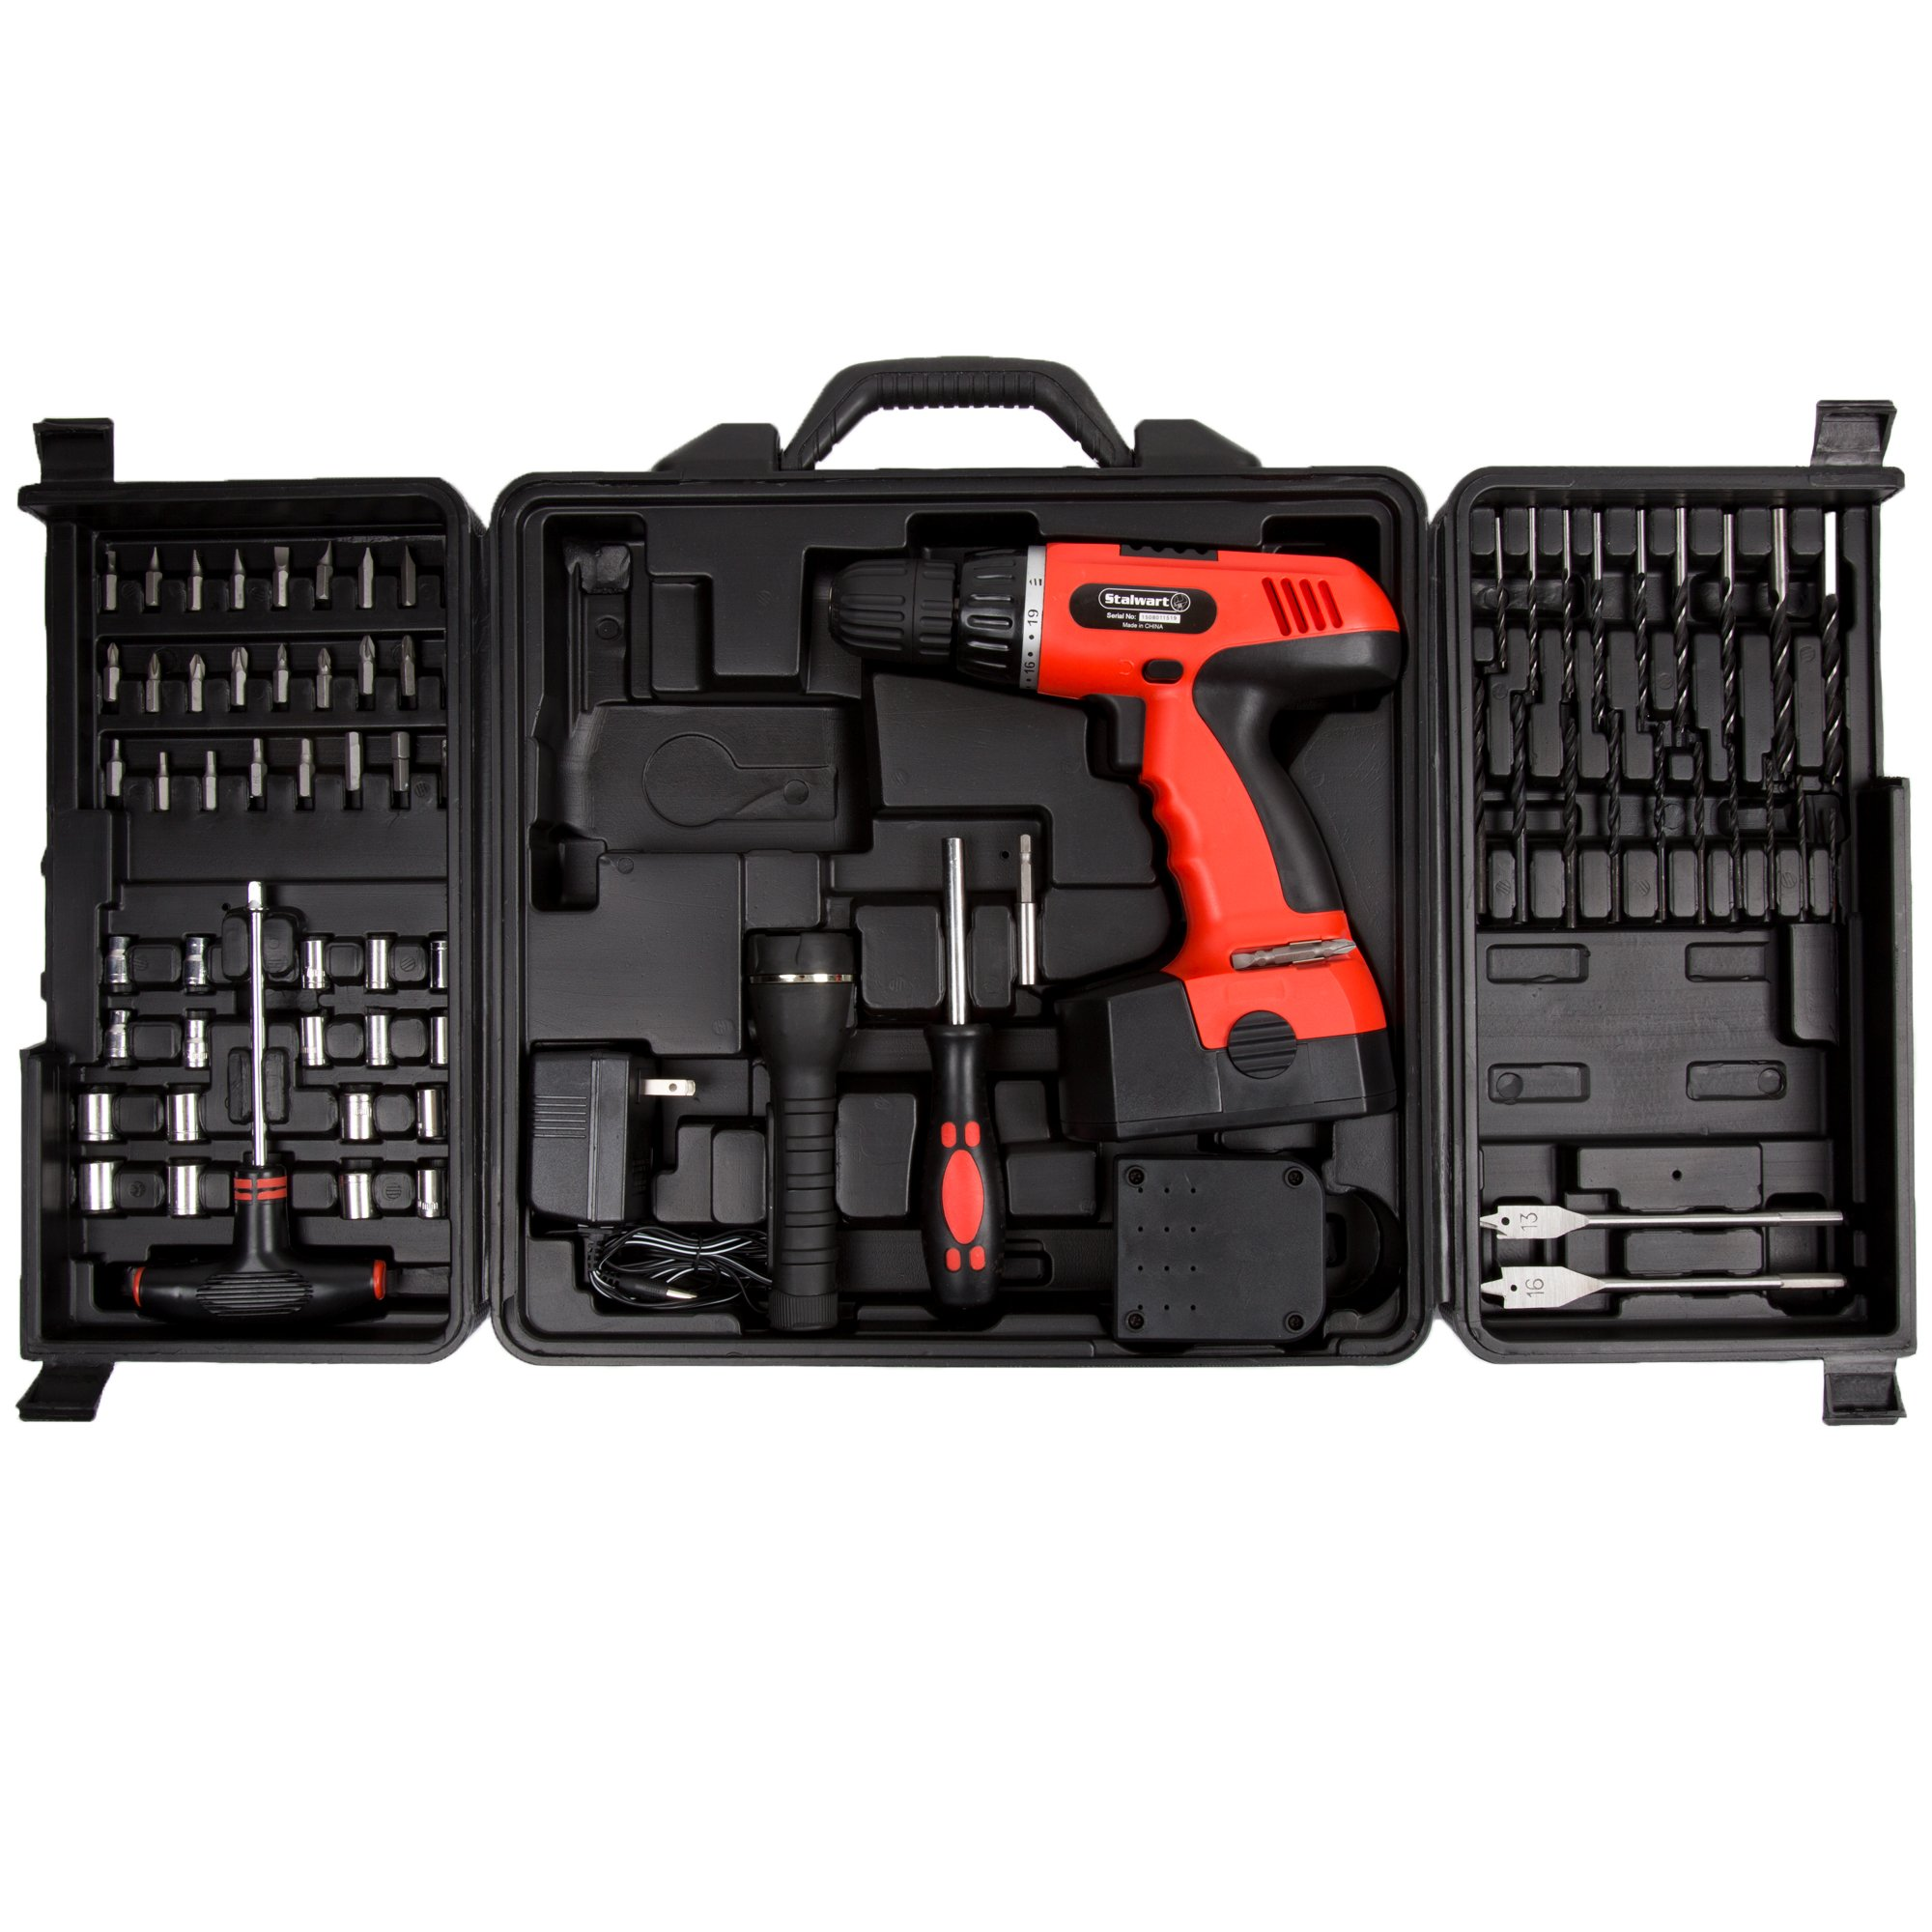 Cordless Drill Set-78 Piece Kit, 18-Volt Power Tool with Bits, Sockets, Drivers, Battery Charger, AC Adapter, Flashlight and Carrying Case by Stalwart by Stalwart